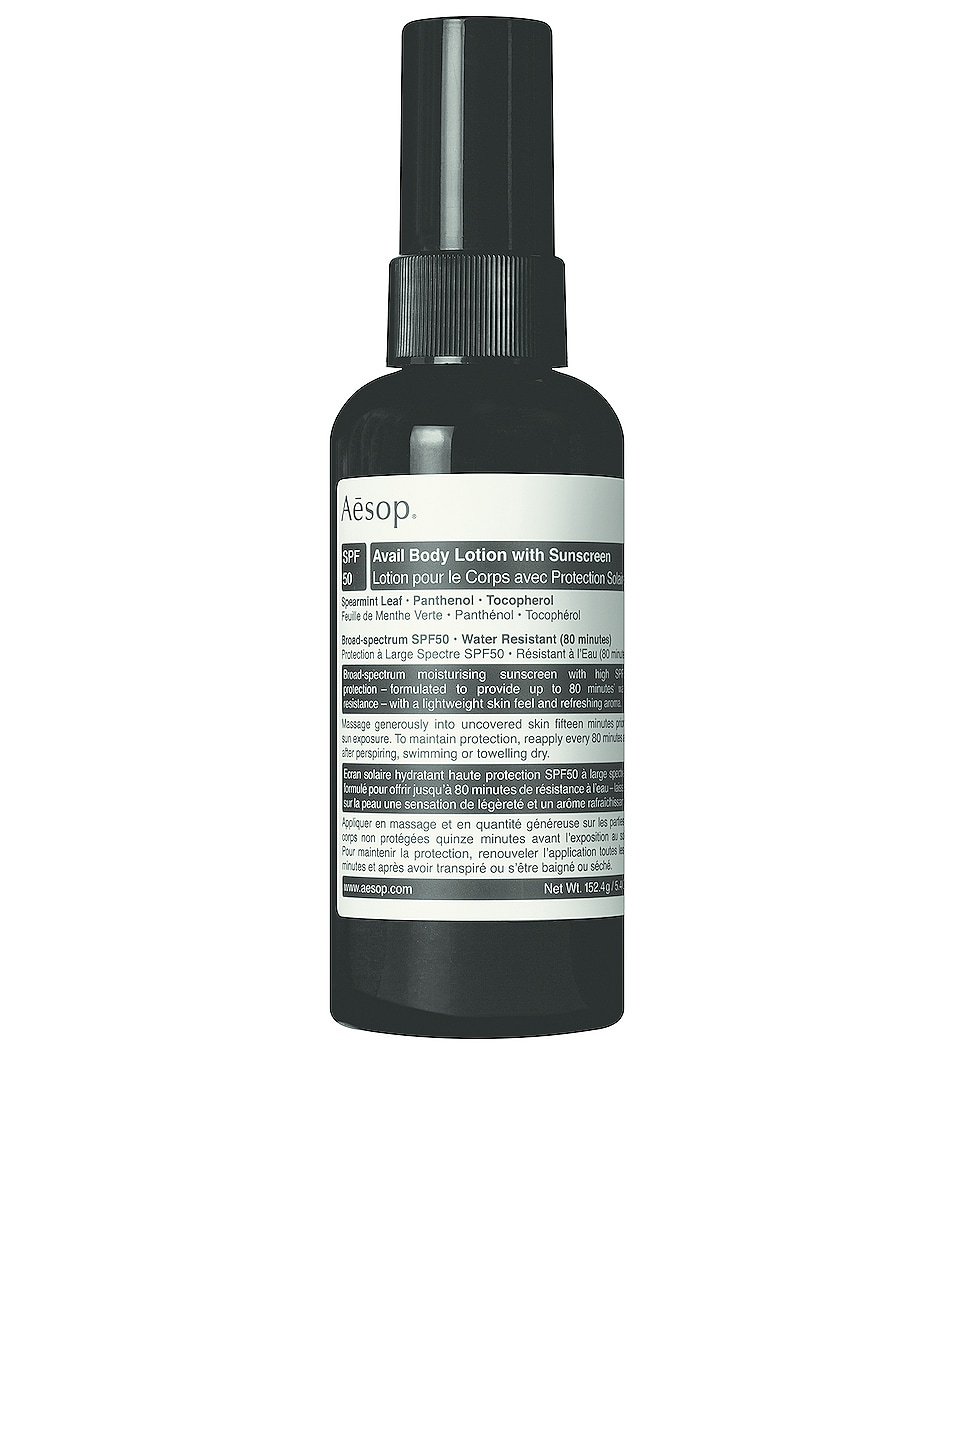 Image 1 of Aesop Avail Body Lotion SPF 50